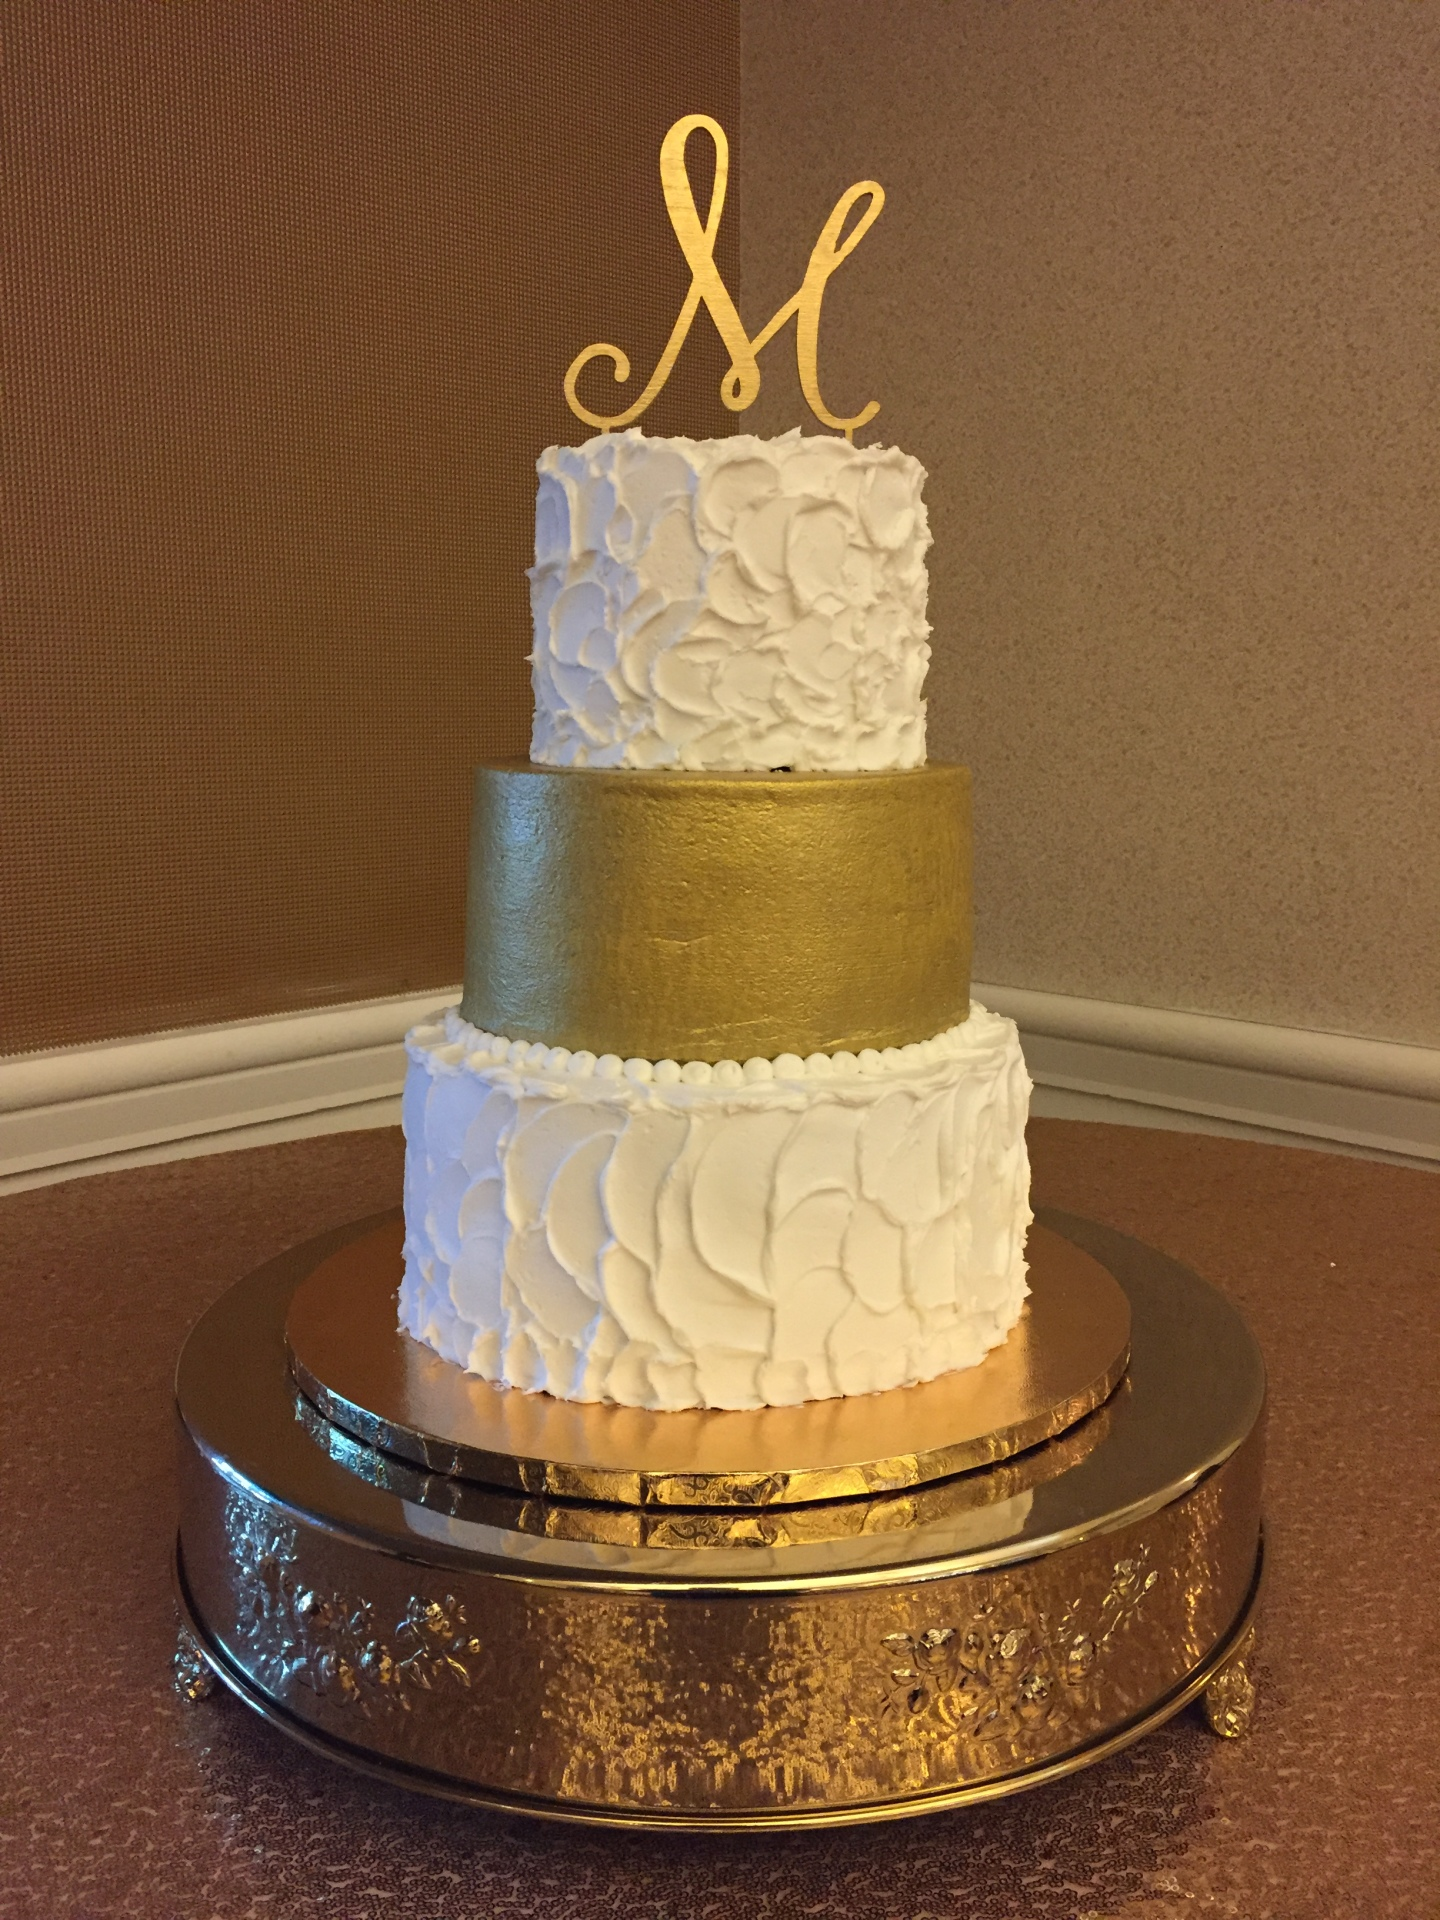 Spackled and gold buttercream